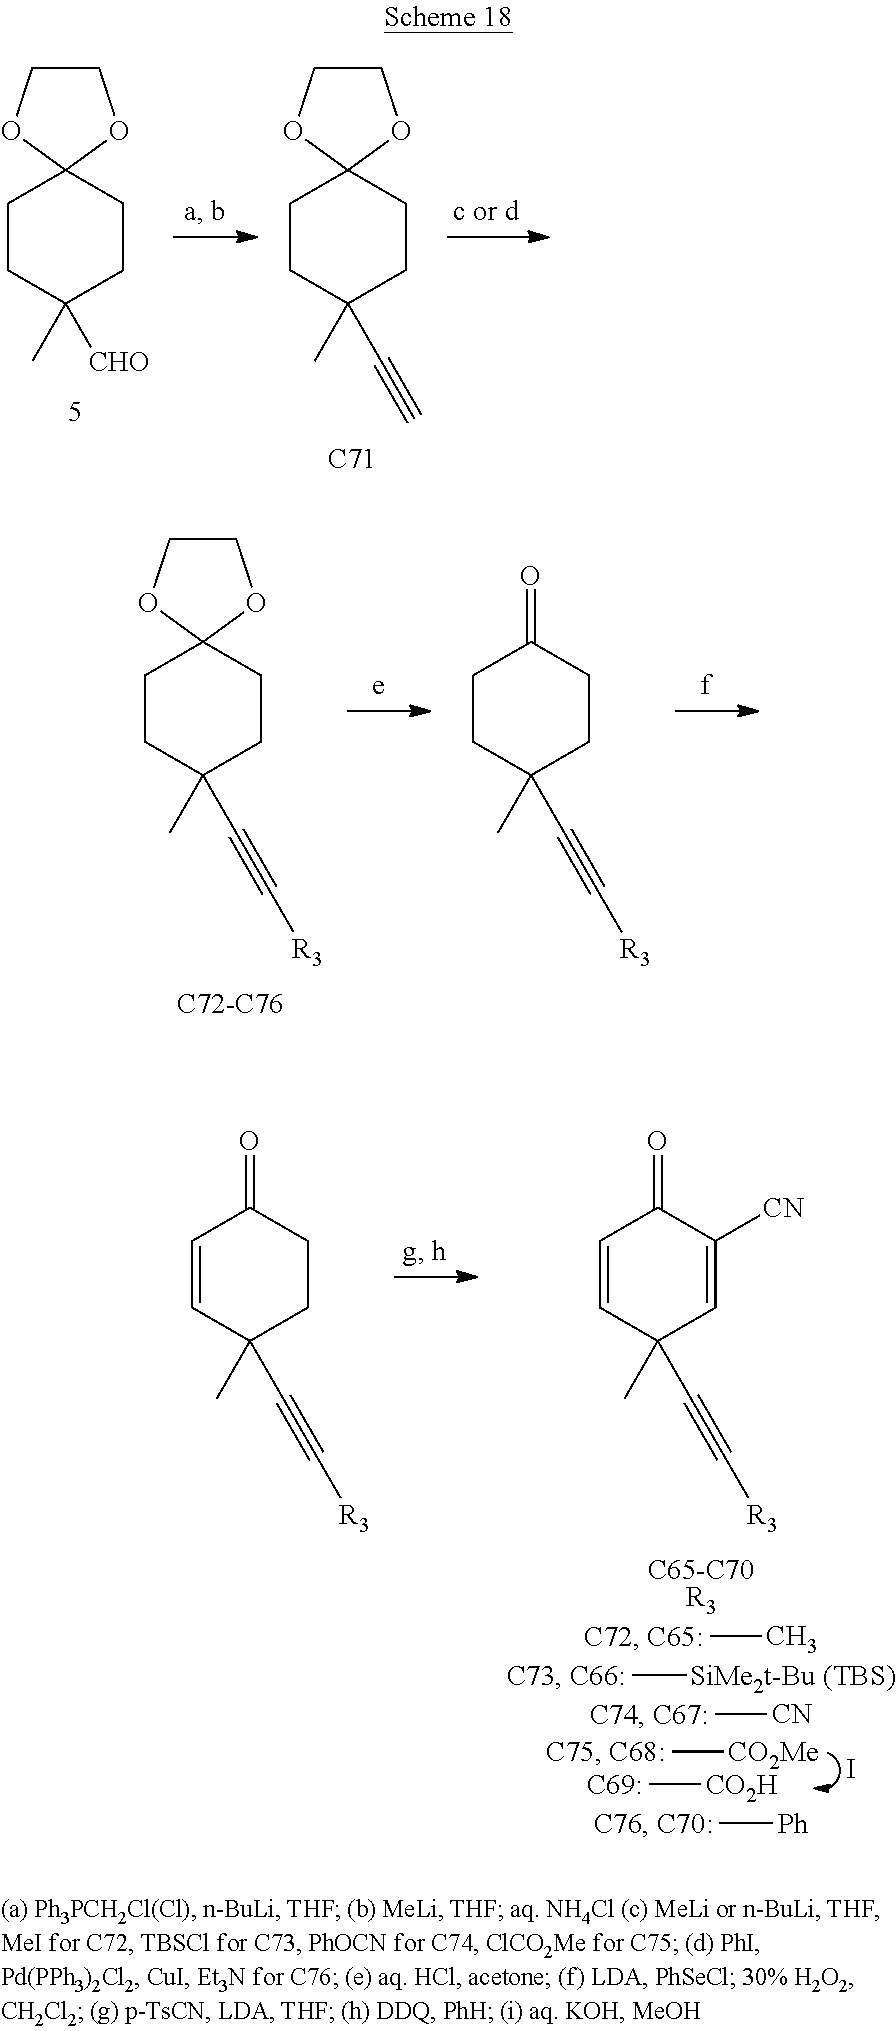 Us20130274480a1 Monocyclic Cyanoenones And Methods Of Use Thereof Circuit Shown In Figure 3201 The Has Two Starting Resistor 20131017 C00061